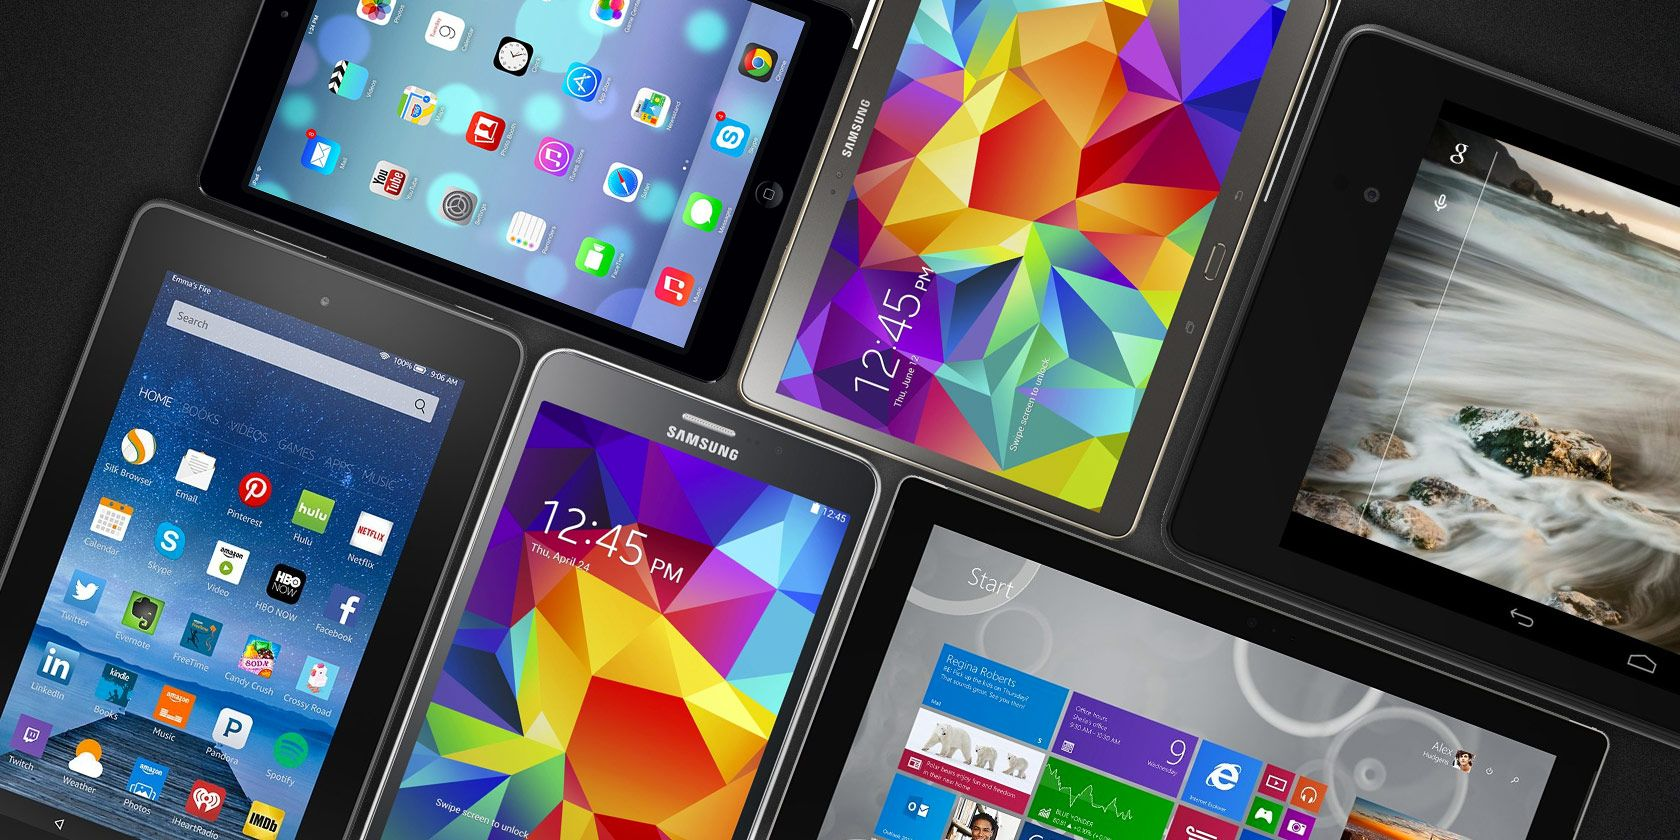 5 Questions You Should Ask Yourself Before Buying a New Tablet